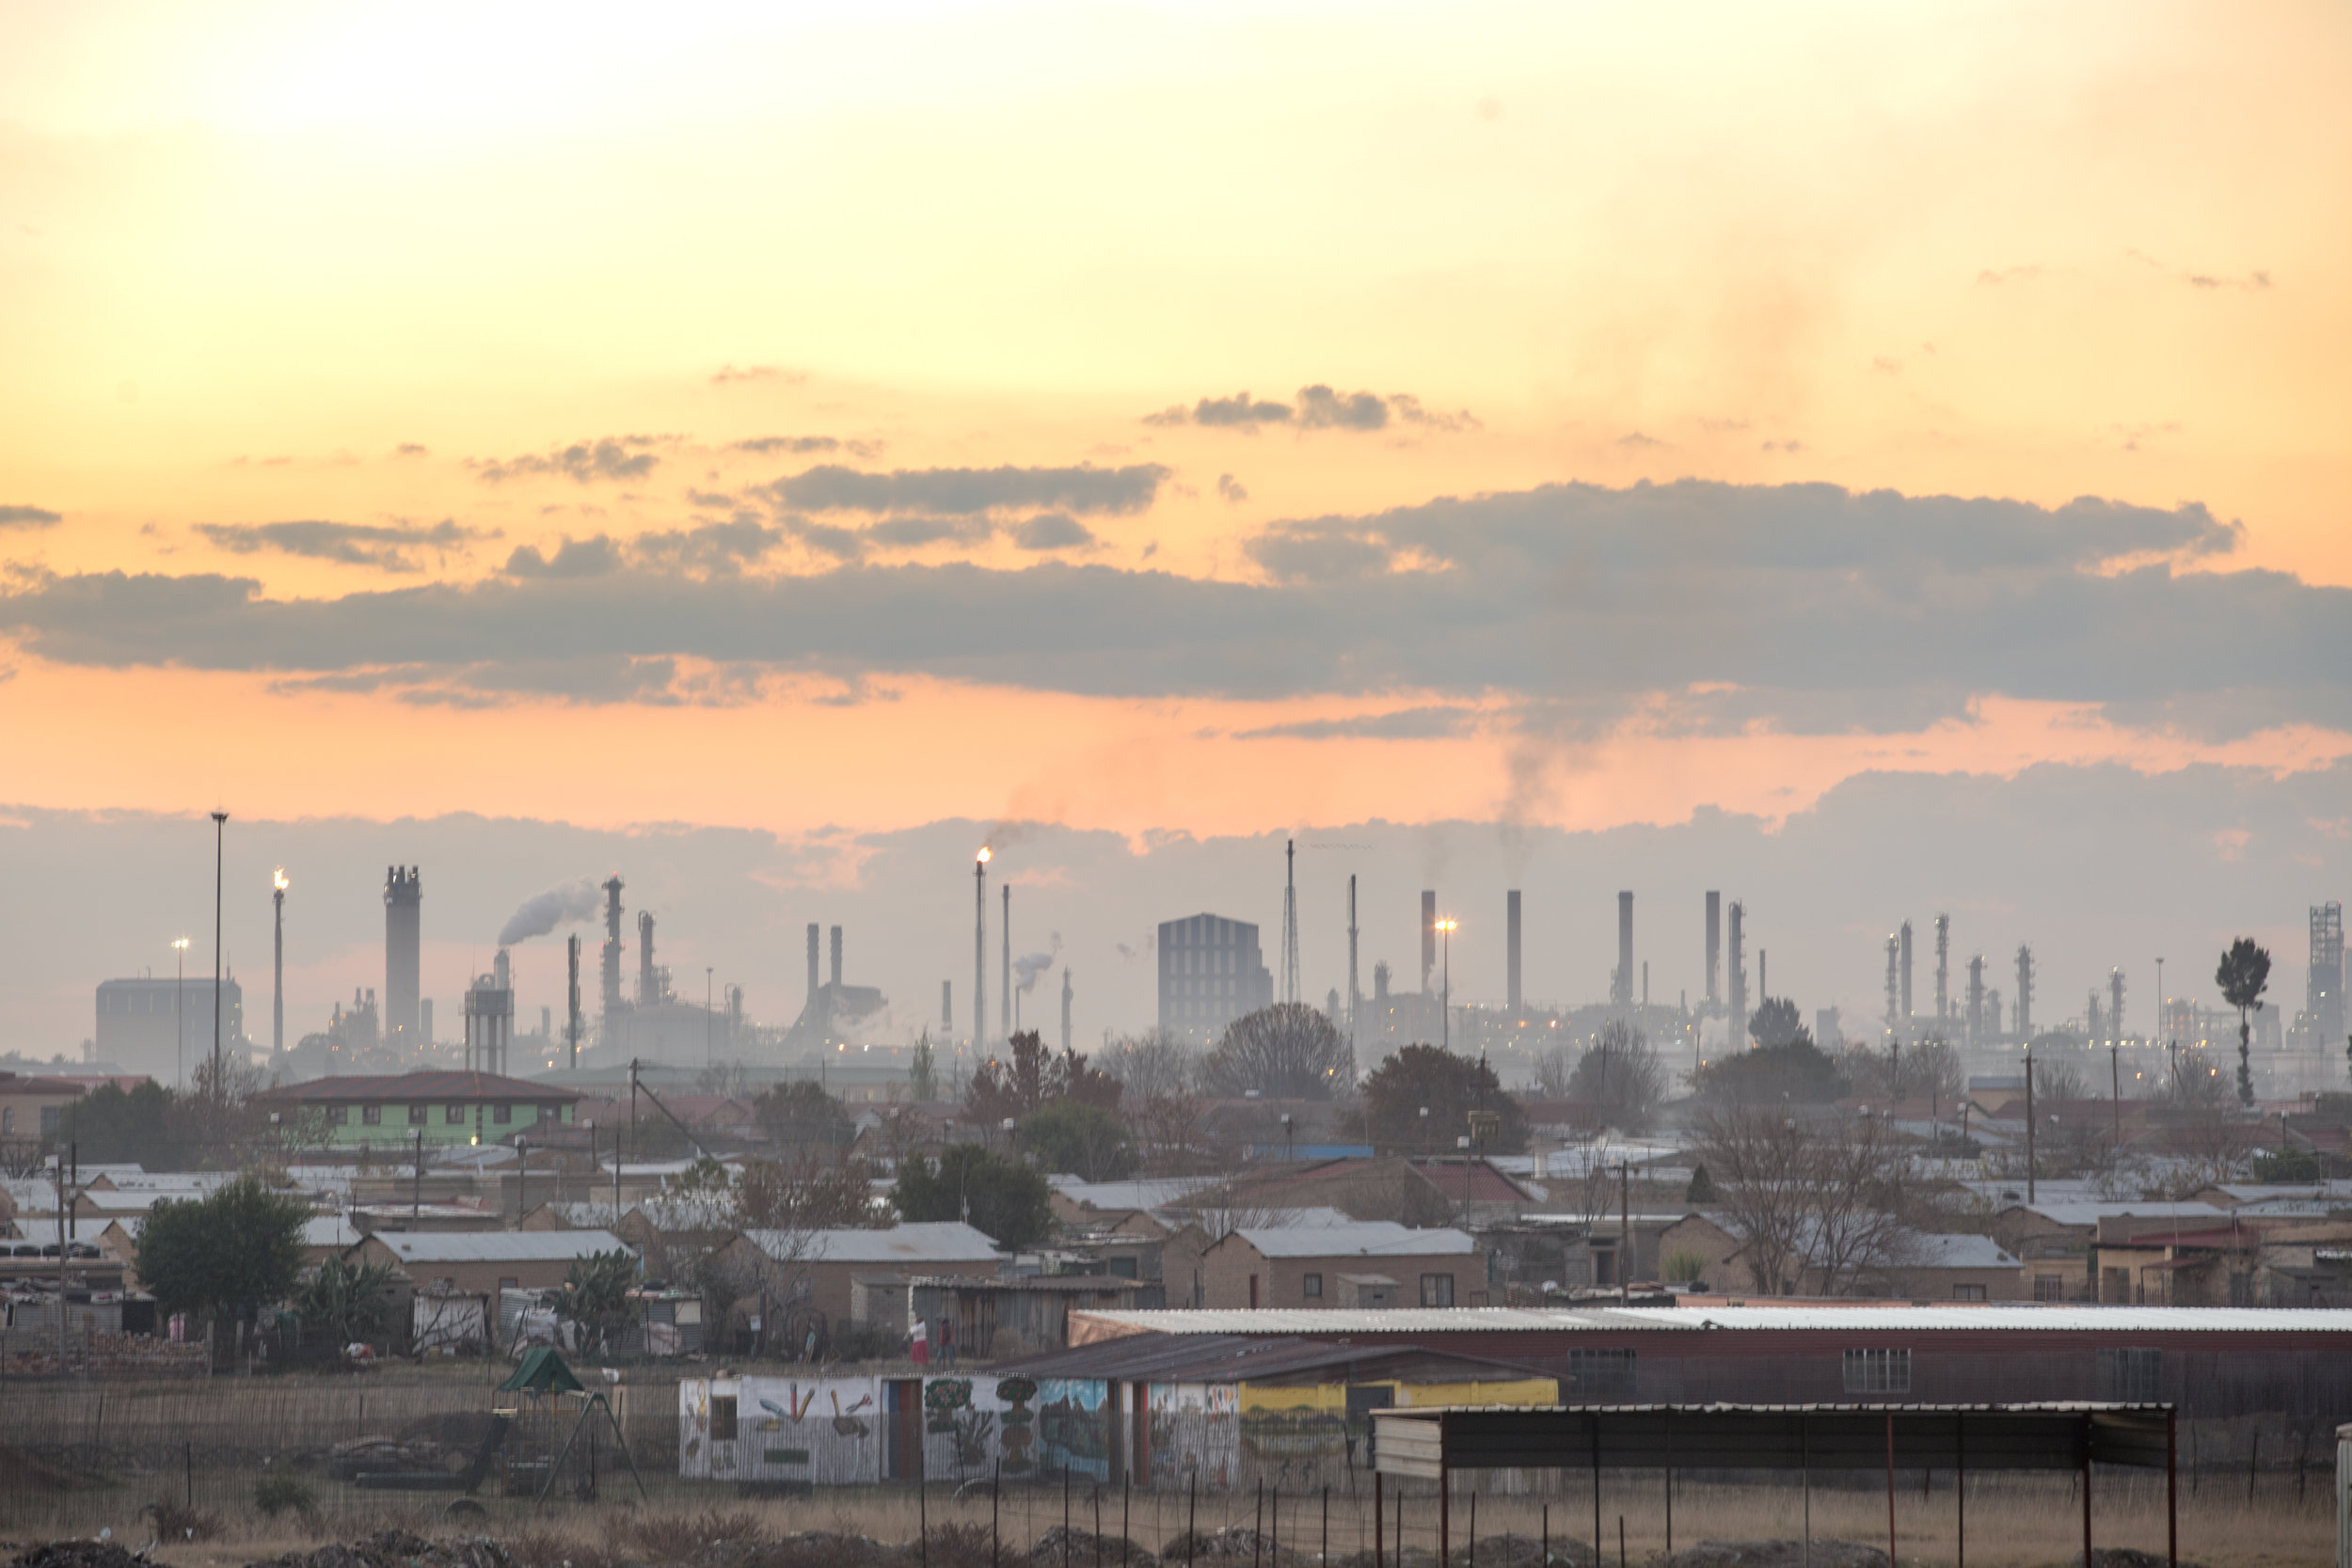 CR0A8288_SOUTHAFRICA_SASOLBURG_PLANTS_HOUSES_SUNSET.jpg